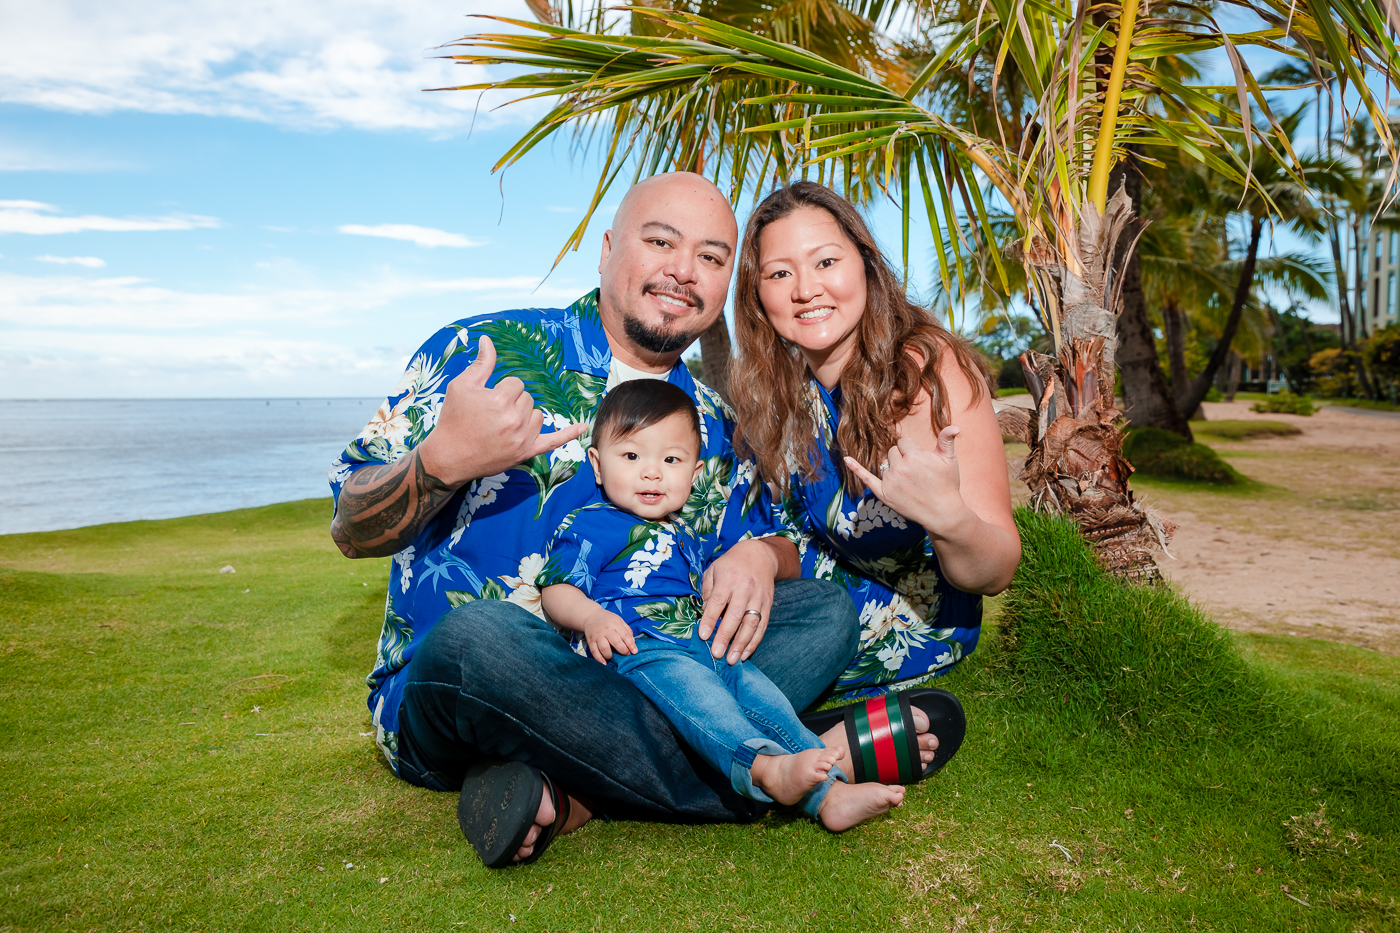 family child baby portrait grass lawn palm tree ocean oahu waikiki